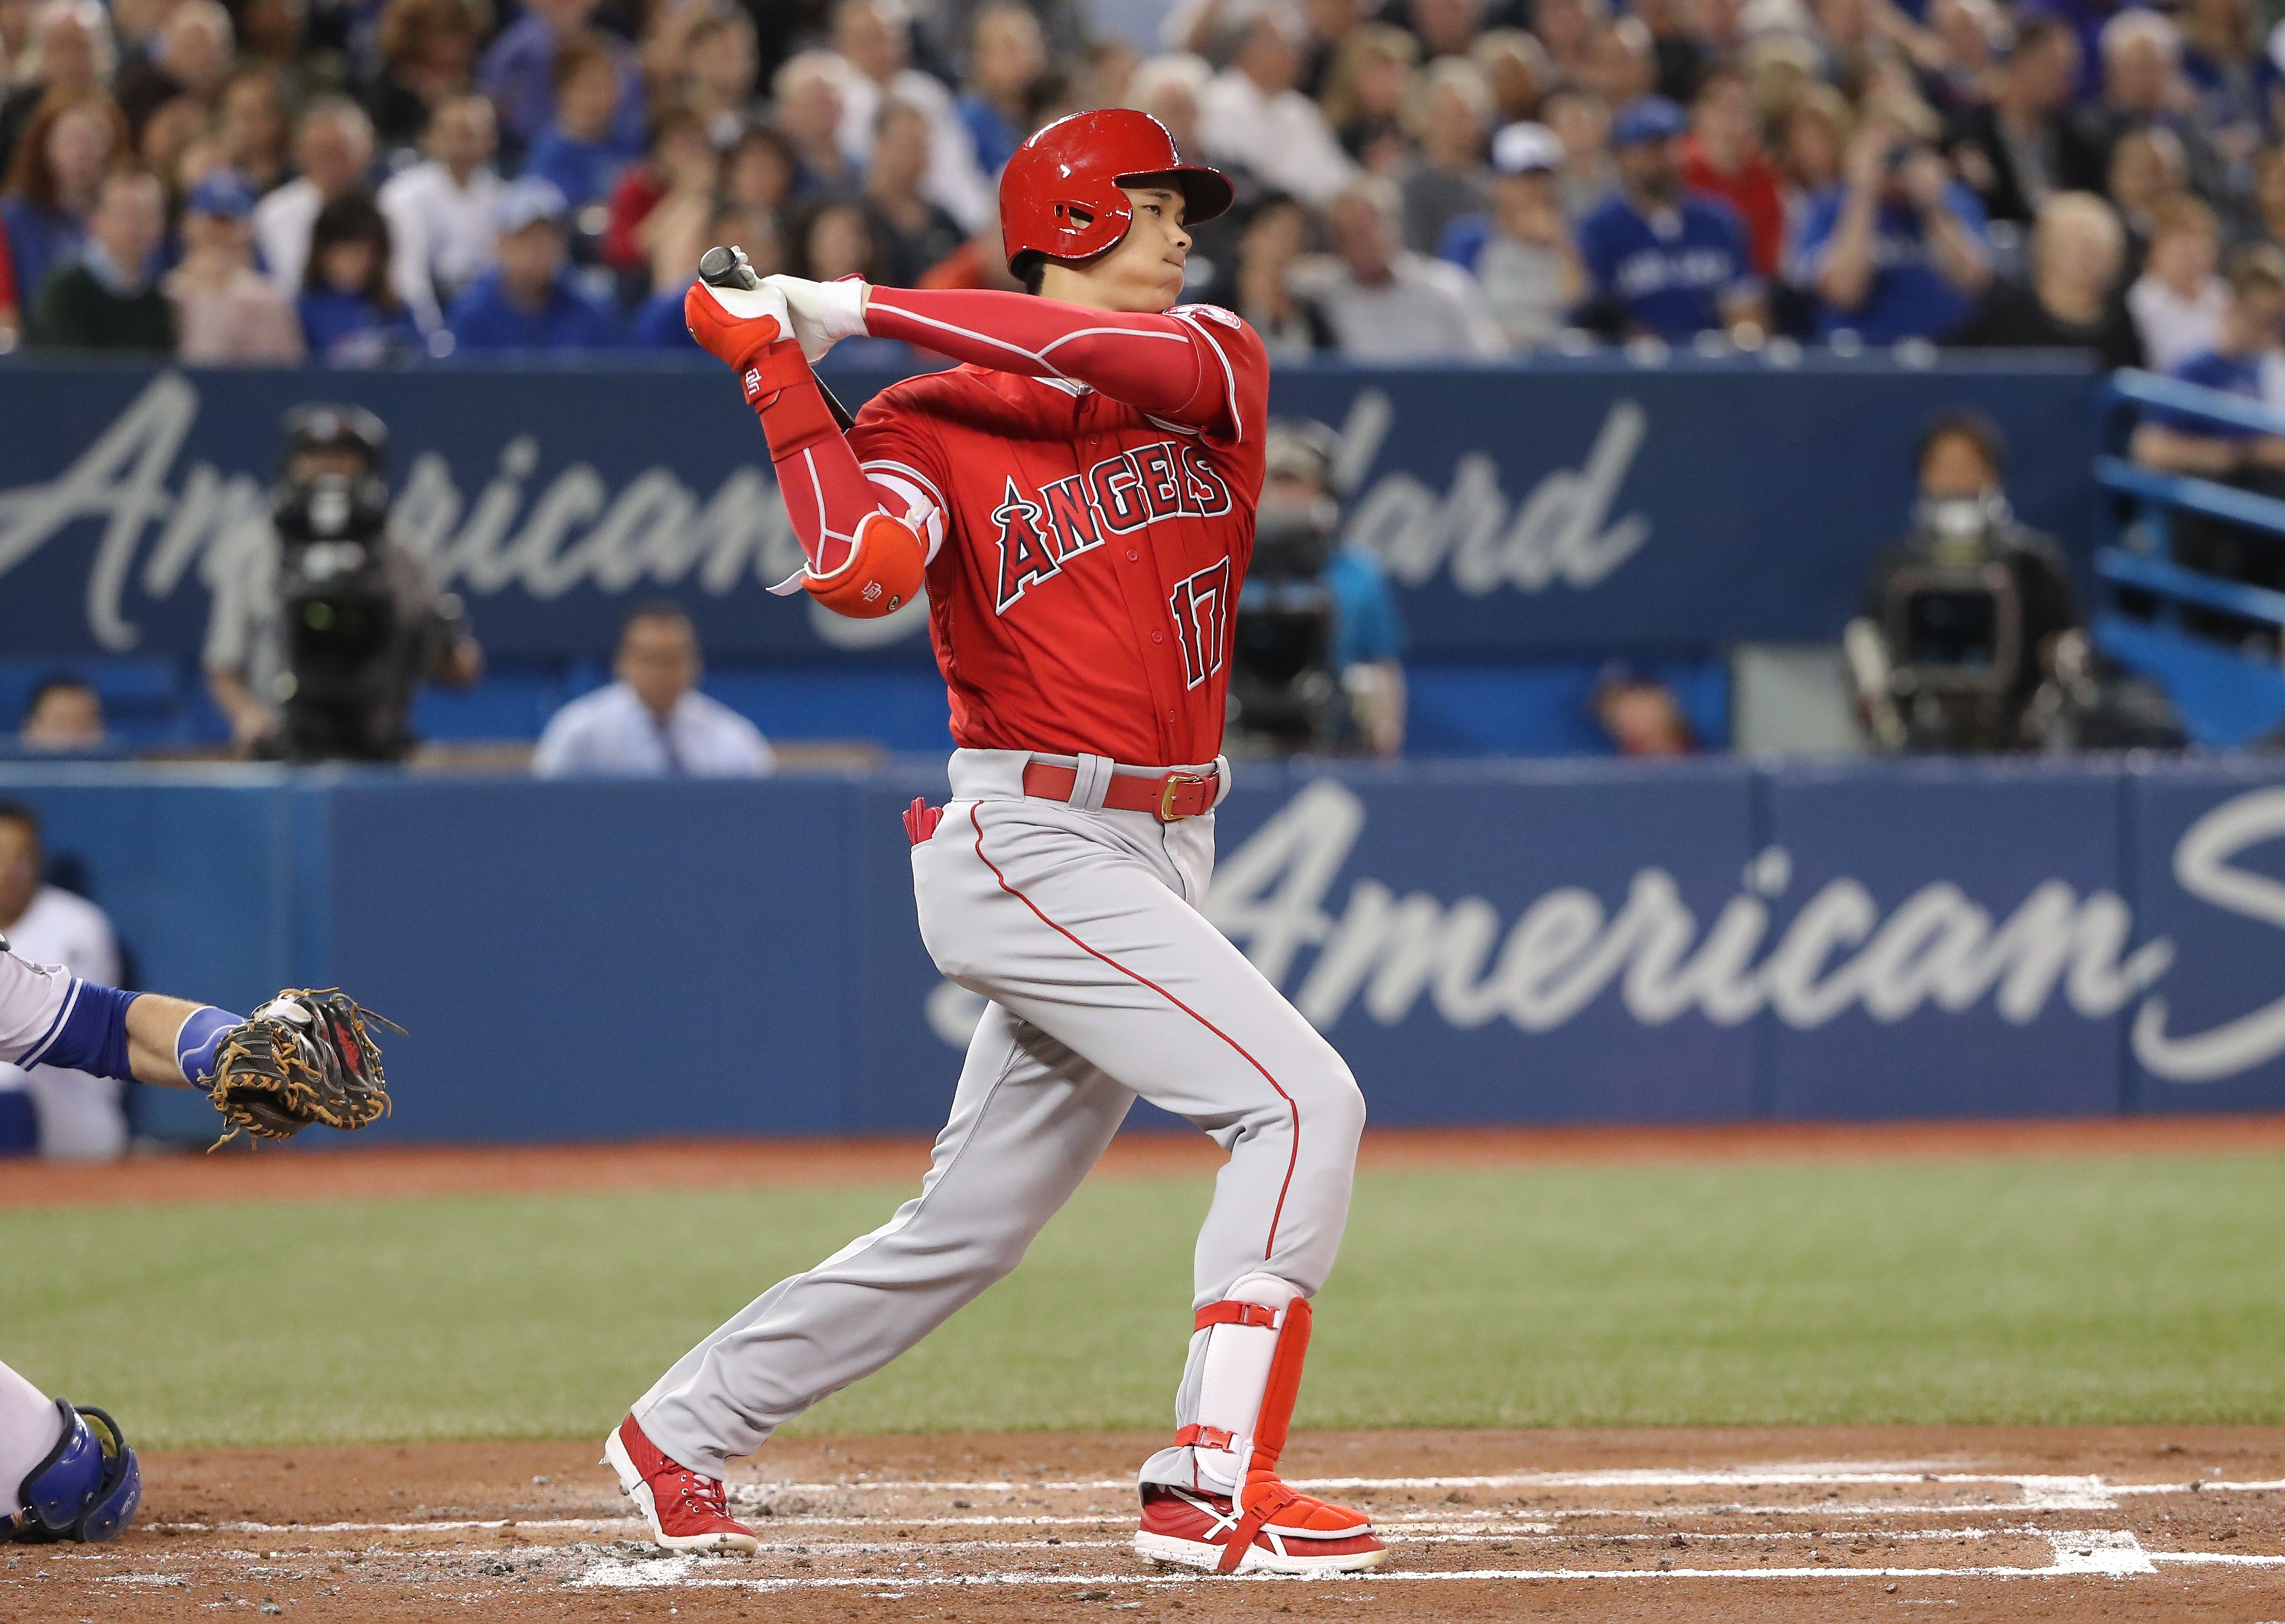 All eyes on two-way star Shohei Ohtani for series between Blue Jays